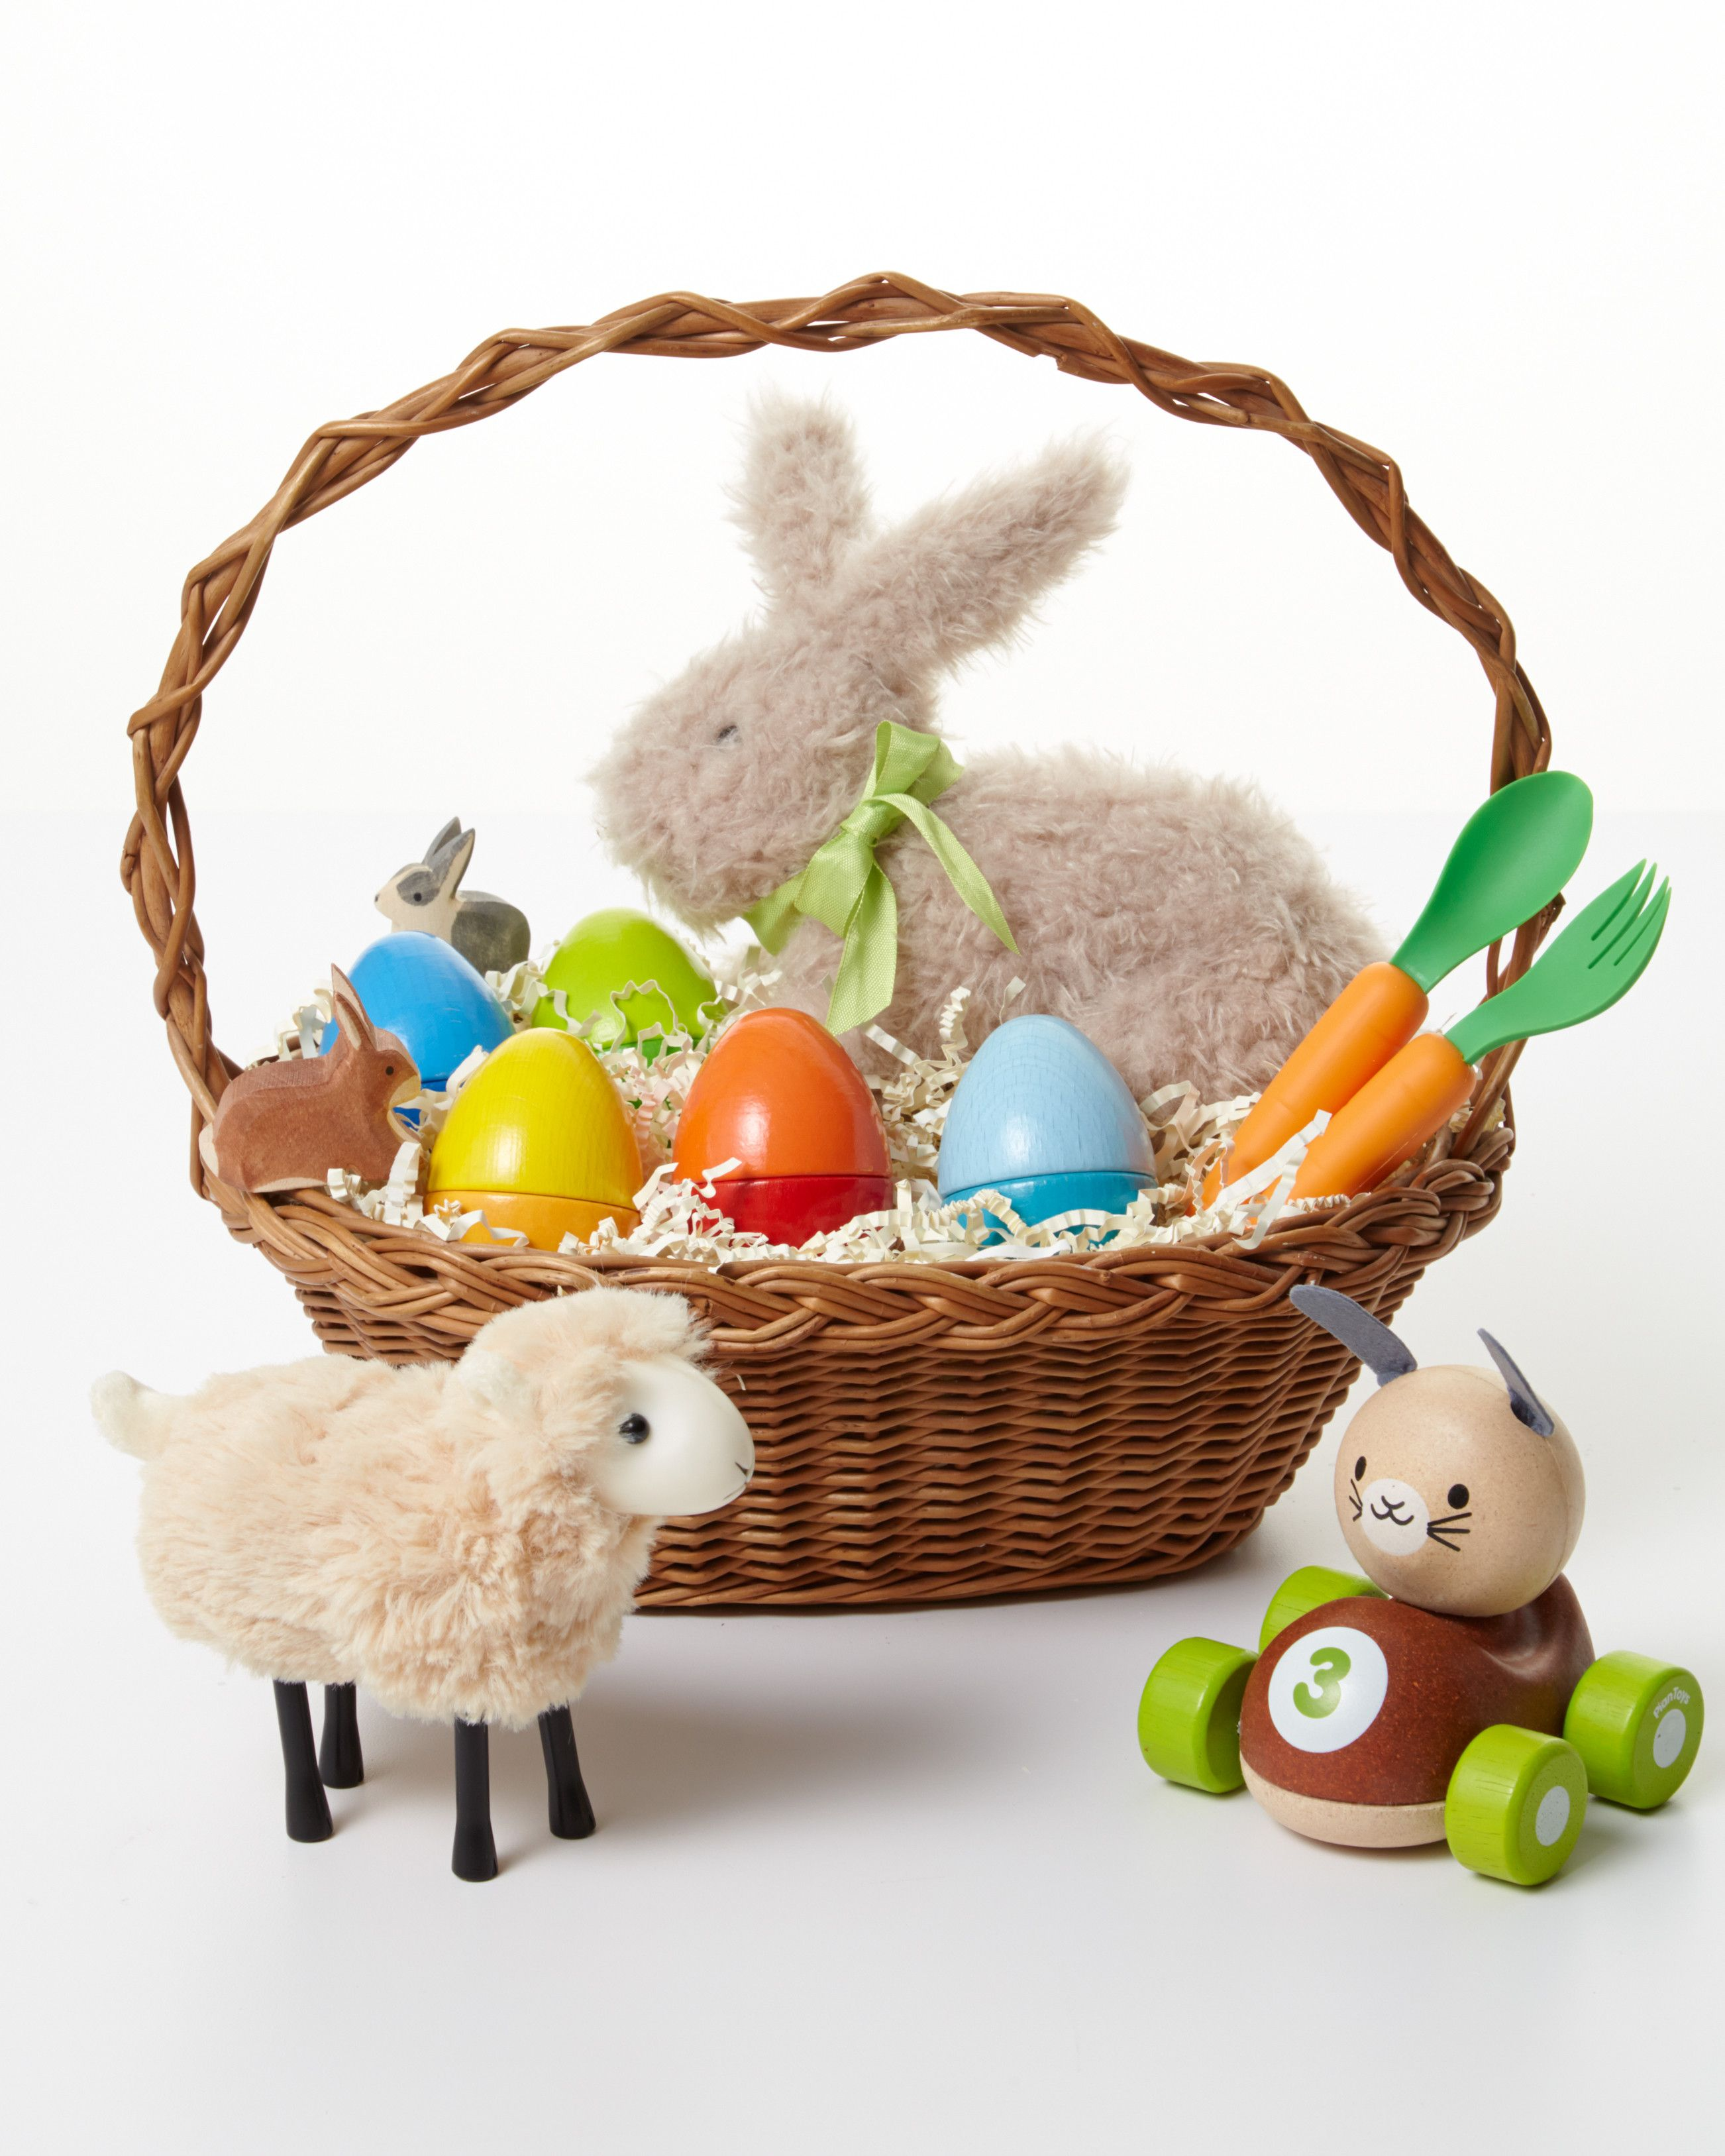 10 Adorable Easter Basket Ideas For Toddlers En 2020 Reciclado Chicle